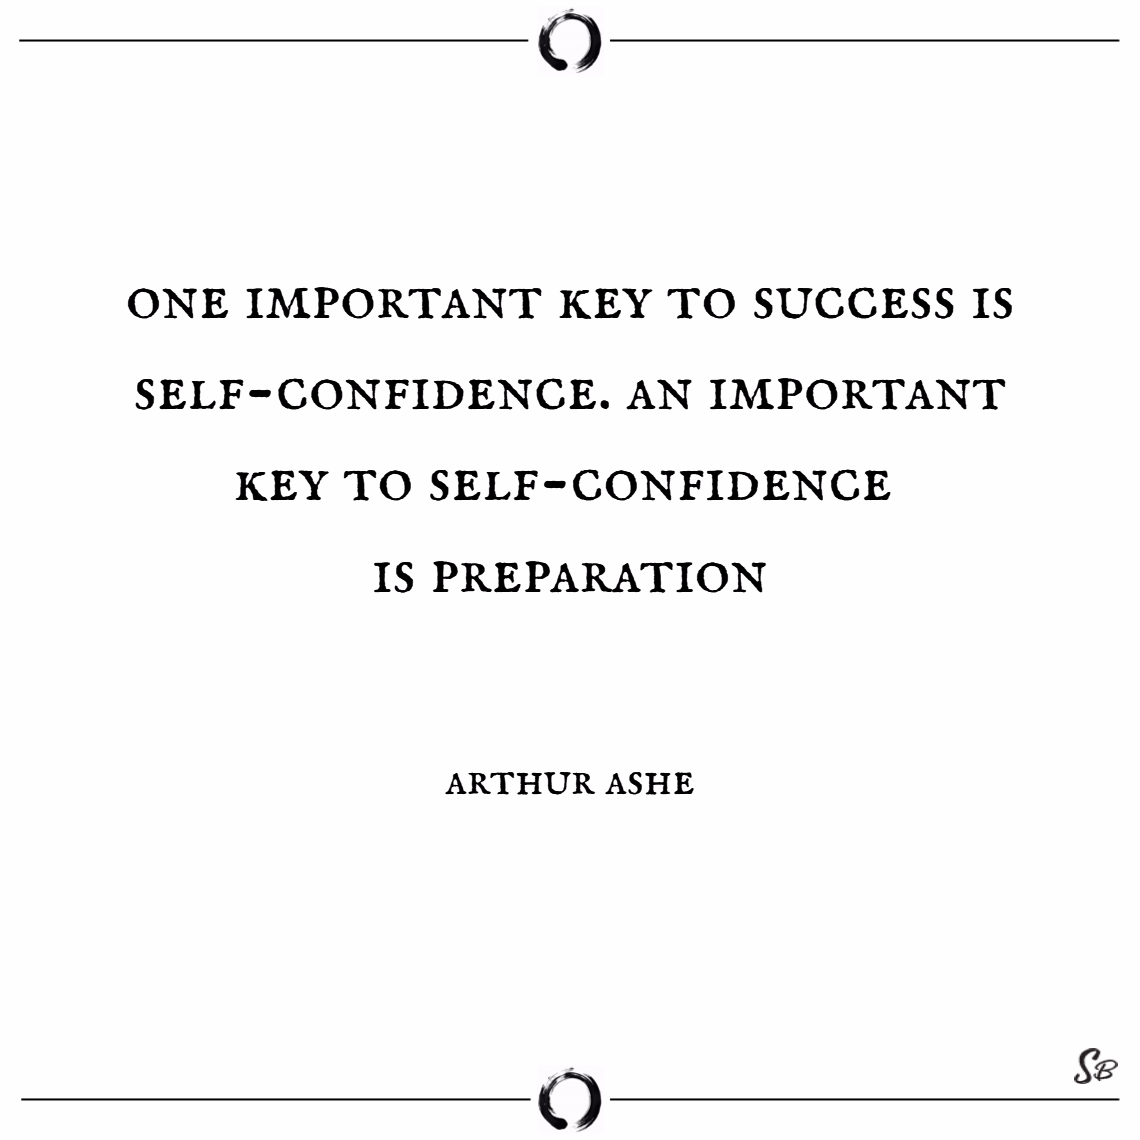 One important key to success is self confidence. an important key to self confidence is preparation. – arthur ashe